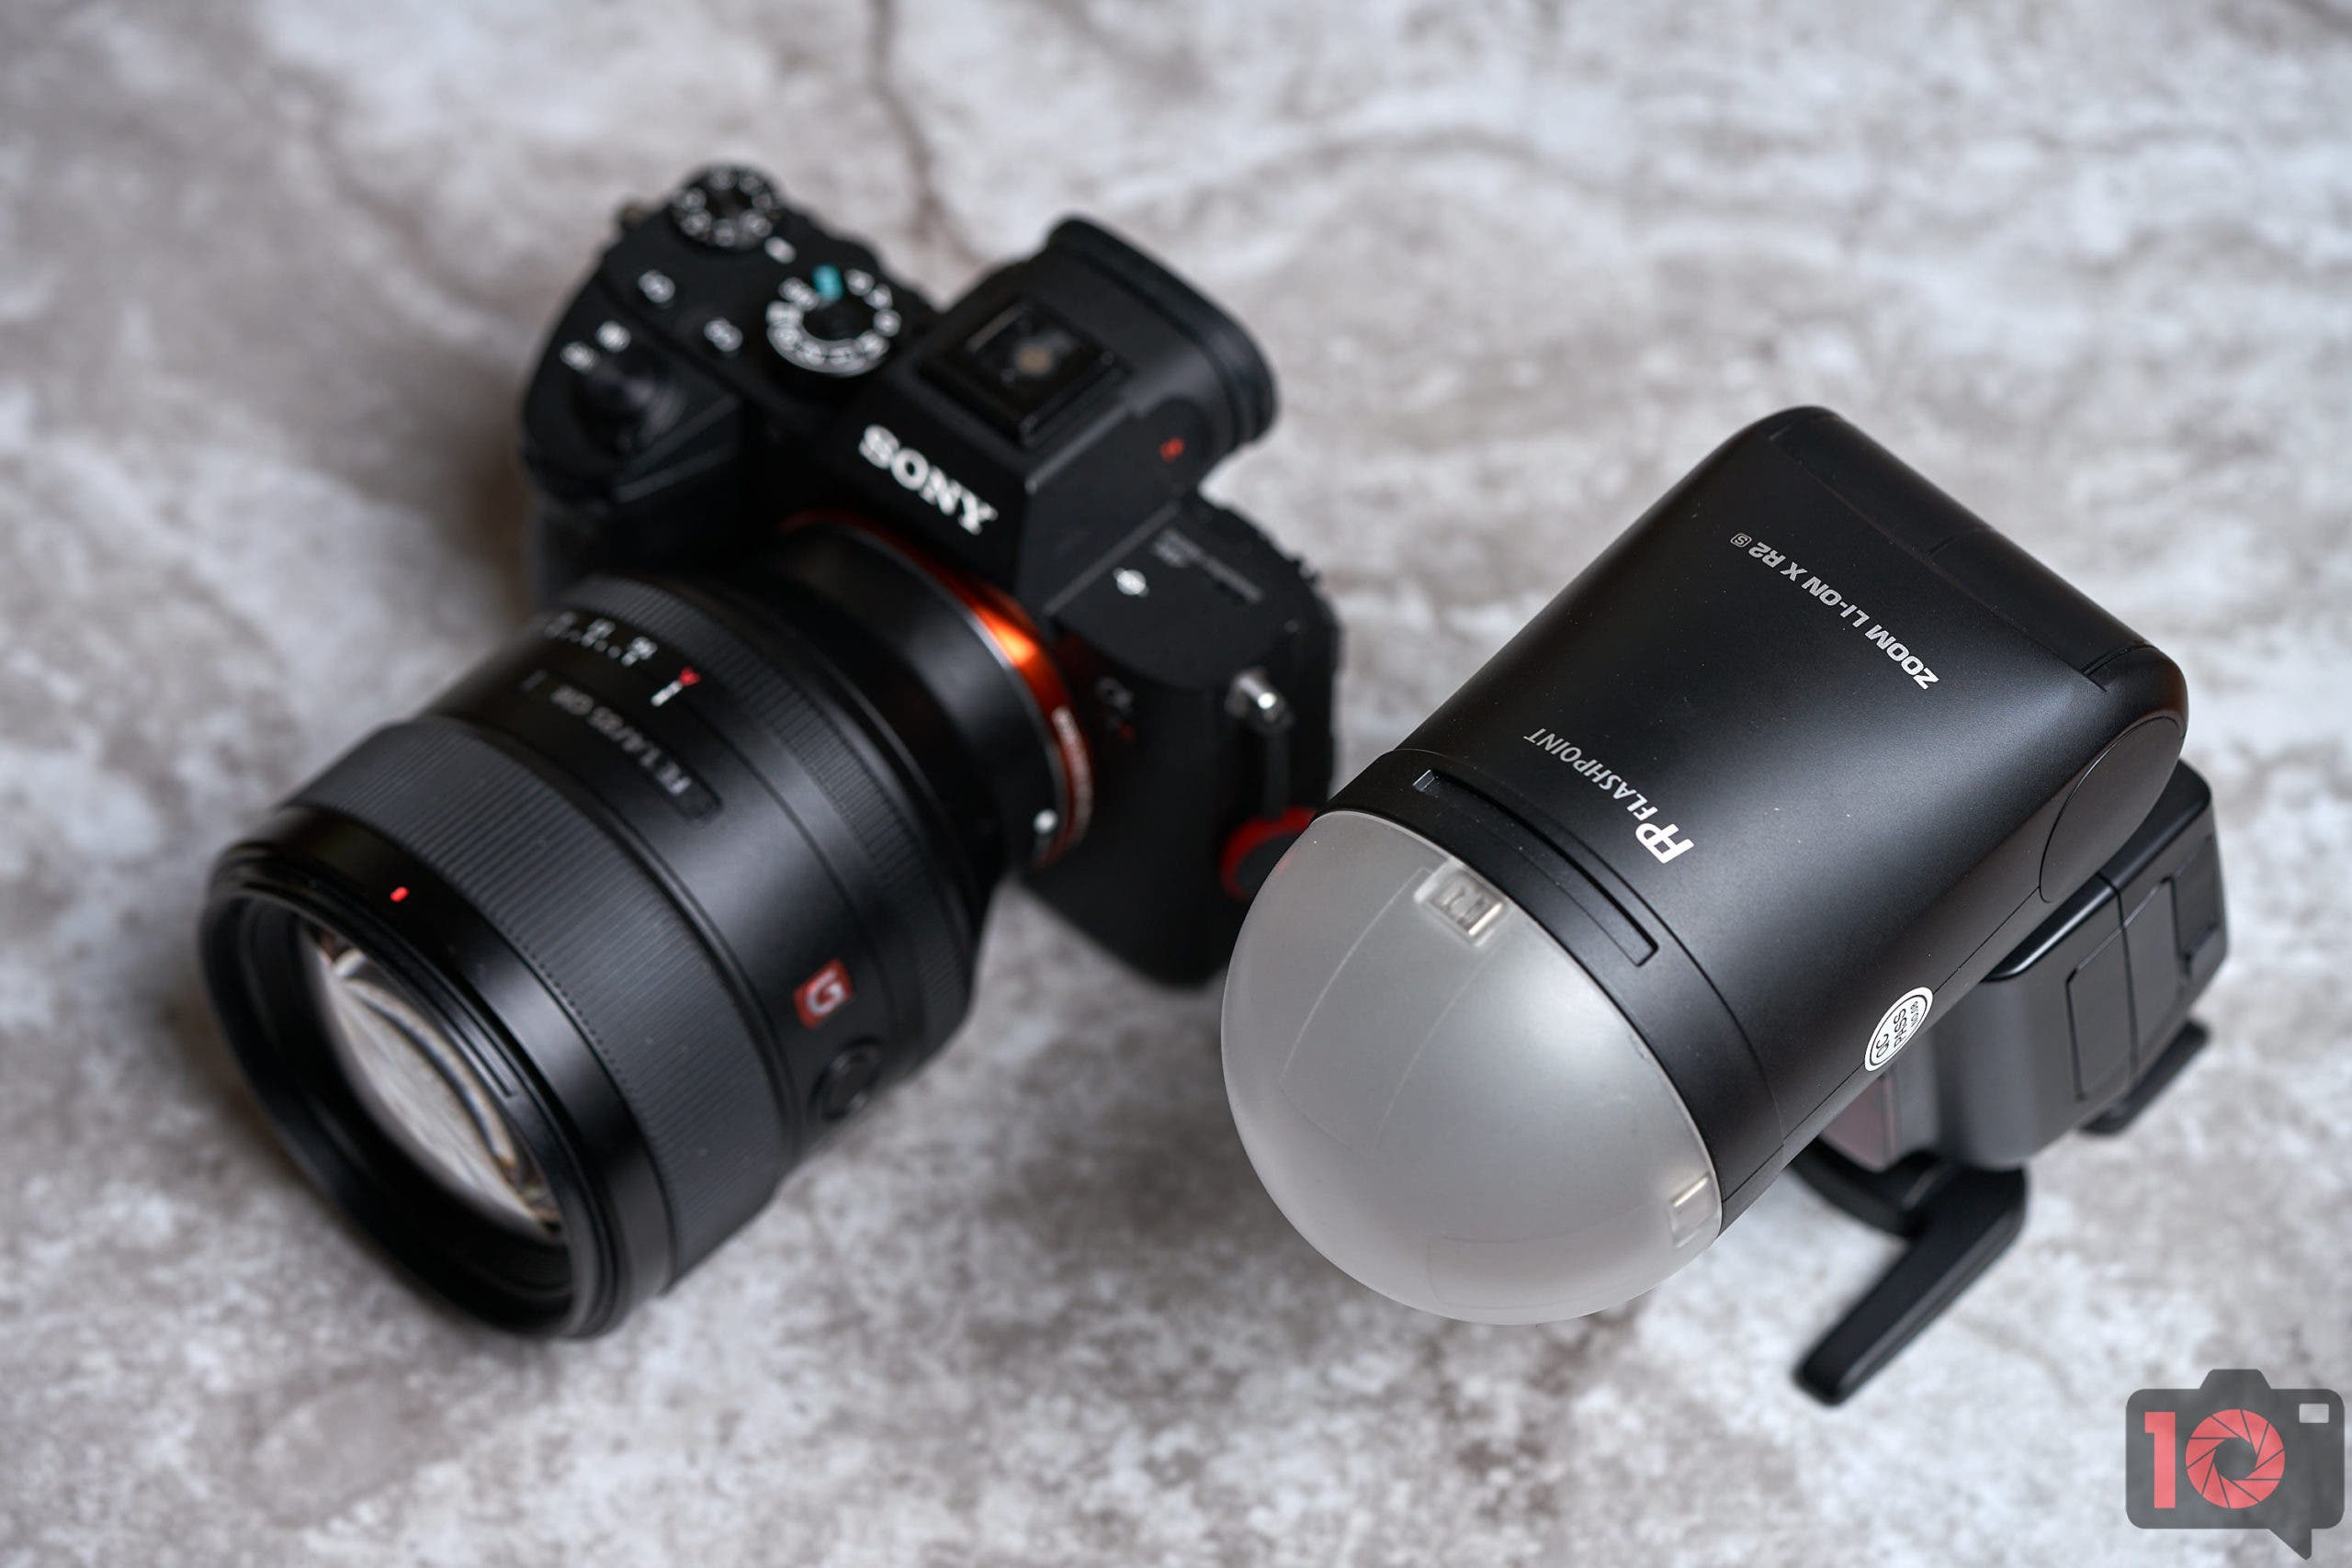 This Flash Survived a Concert: Flashpoint Zoom Li-on X R2 TTL Review